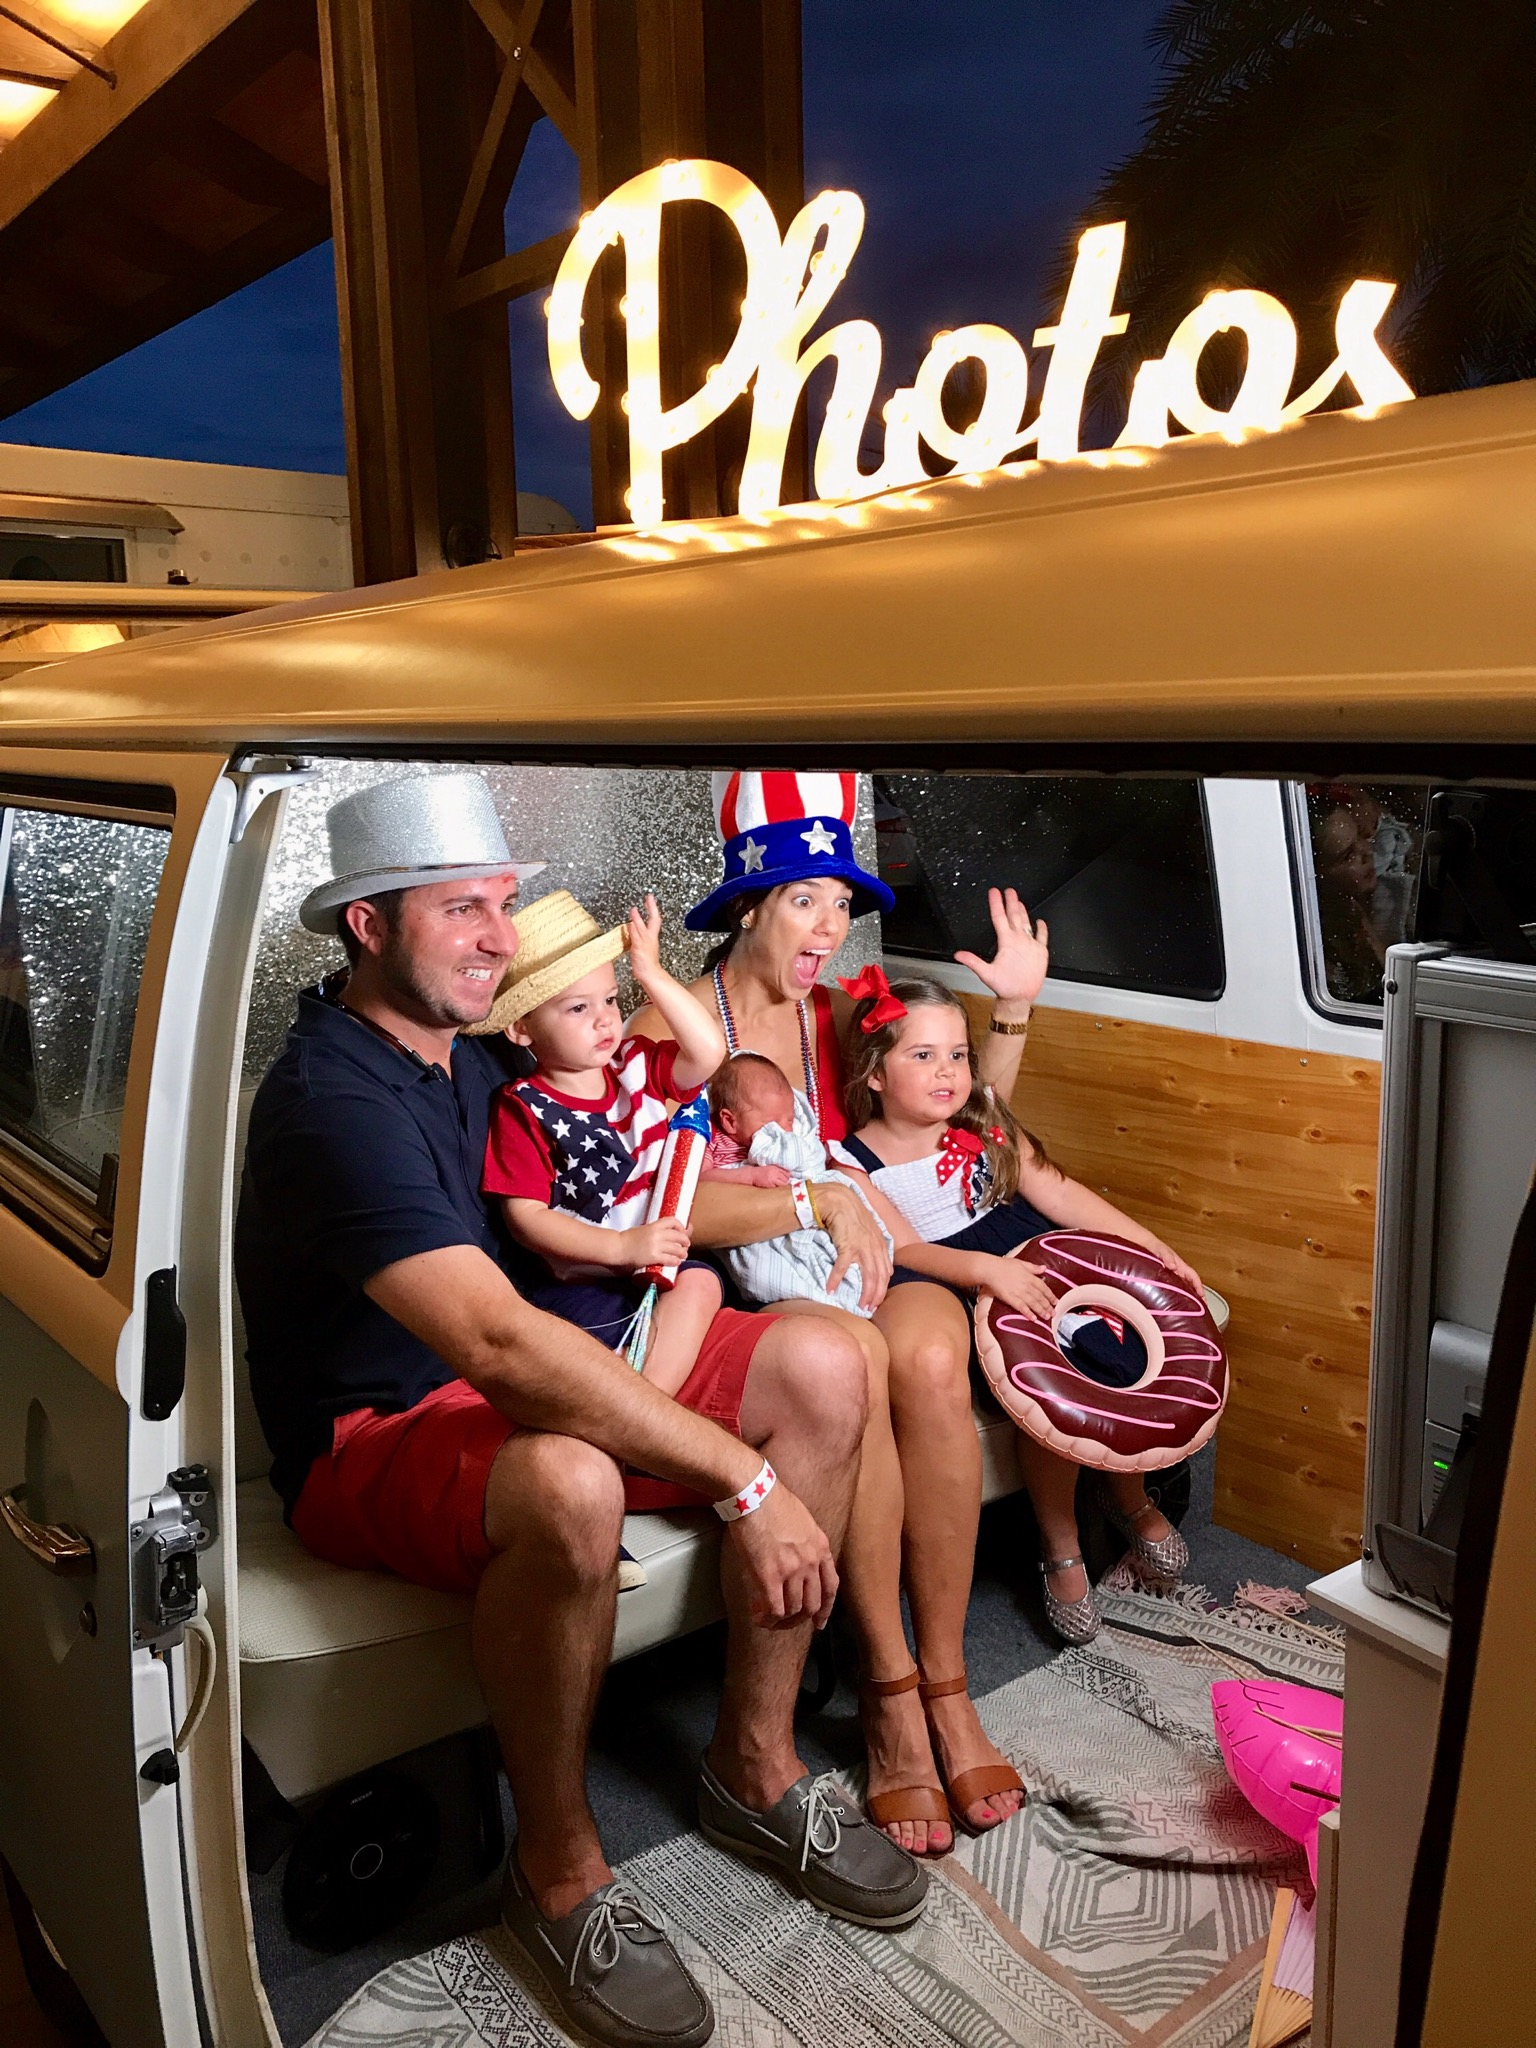 VW Photo Bus in Bradenton for a party.